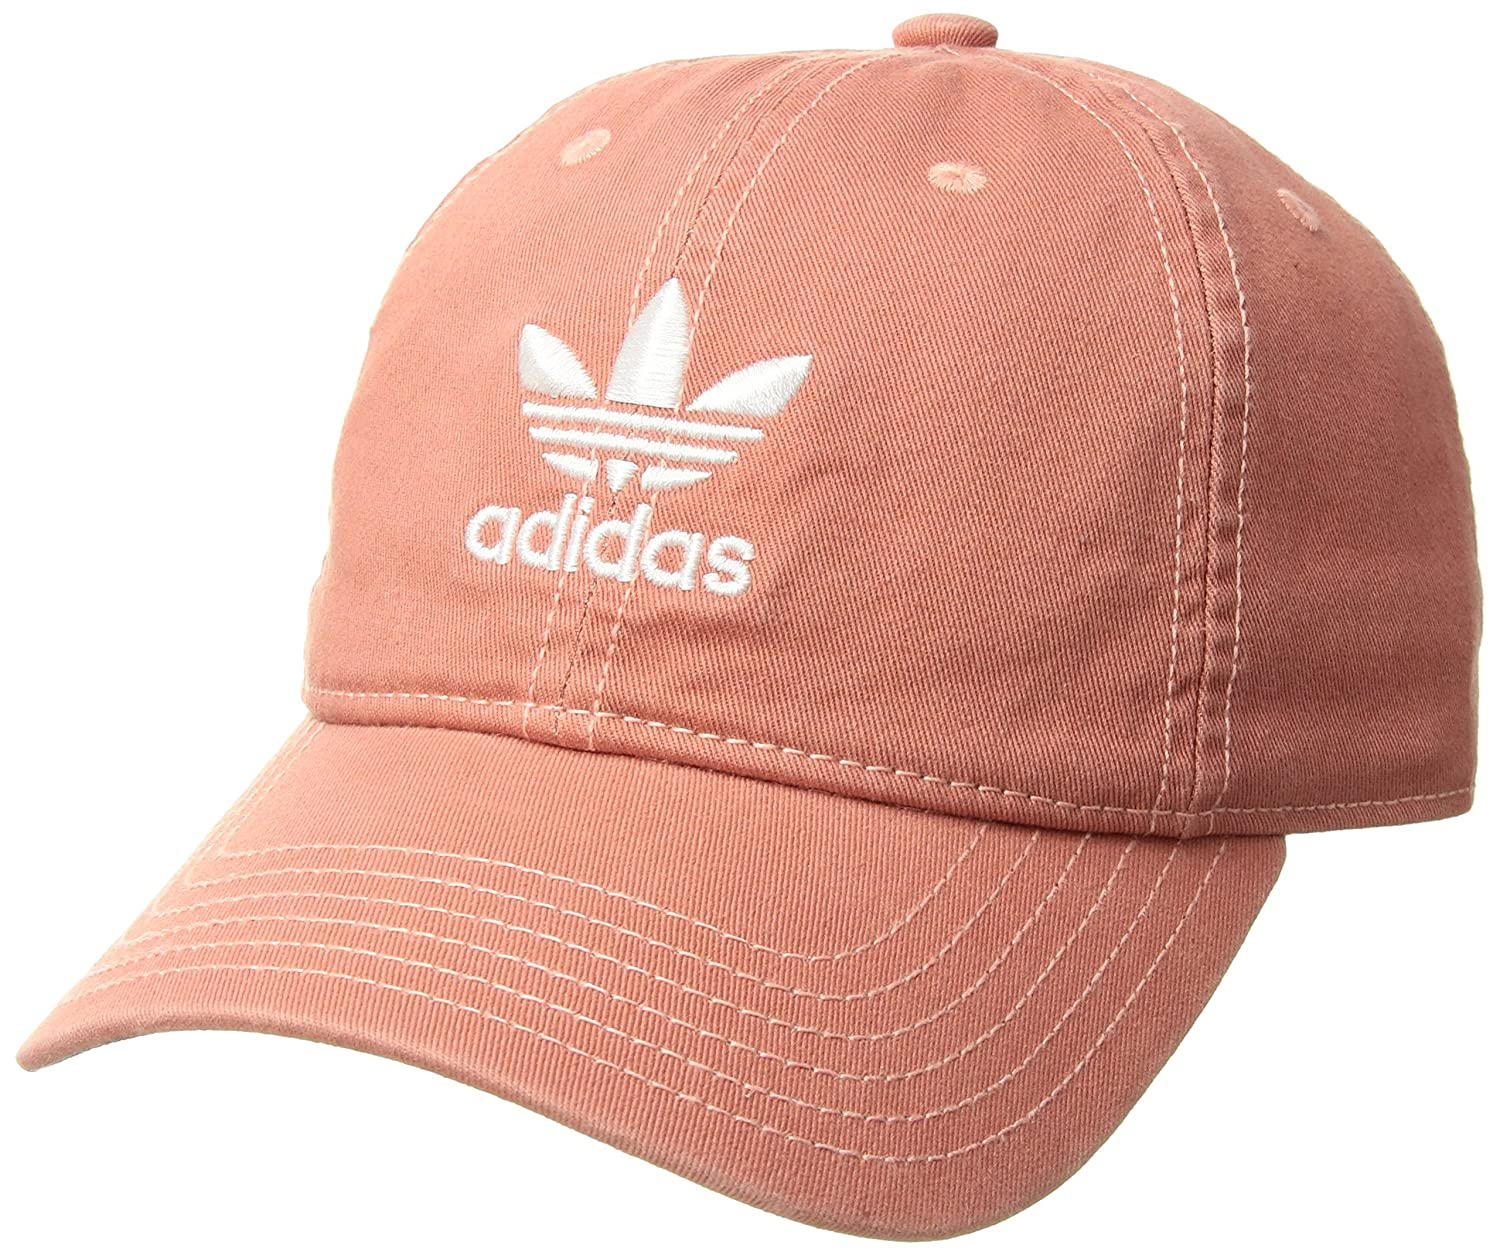 adidas Women's Originals Relaxed Fit Strapback Cap Agron Hats & Accessories 975949